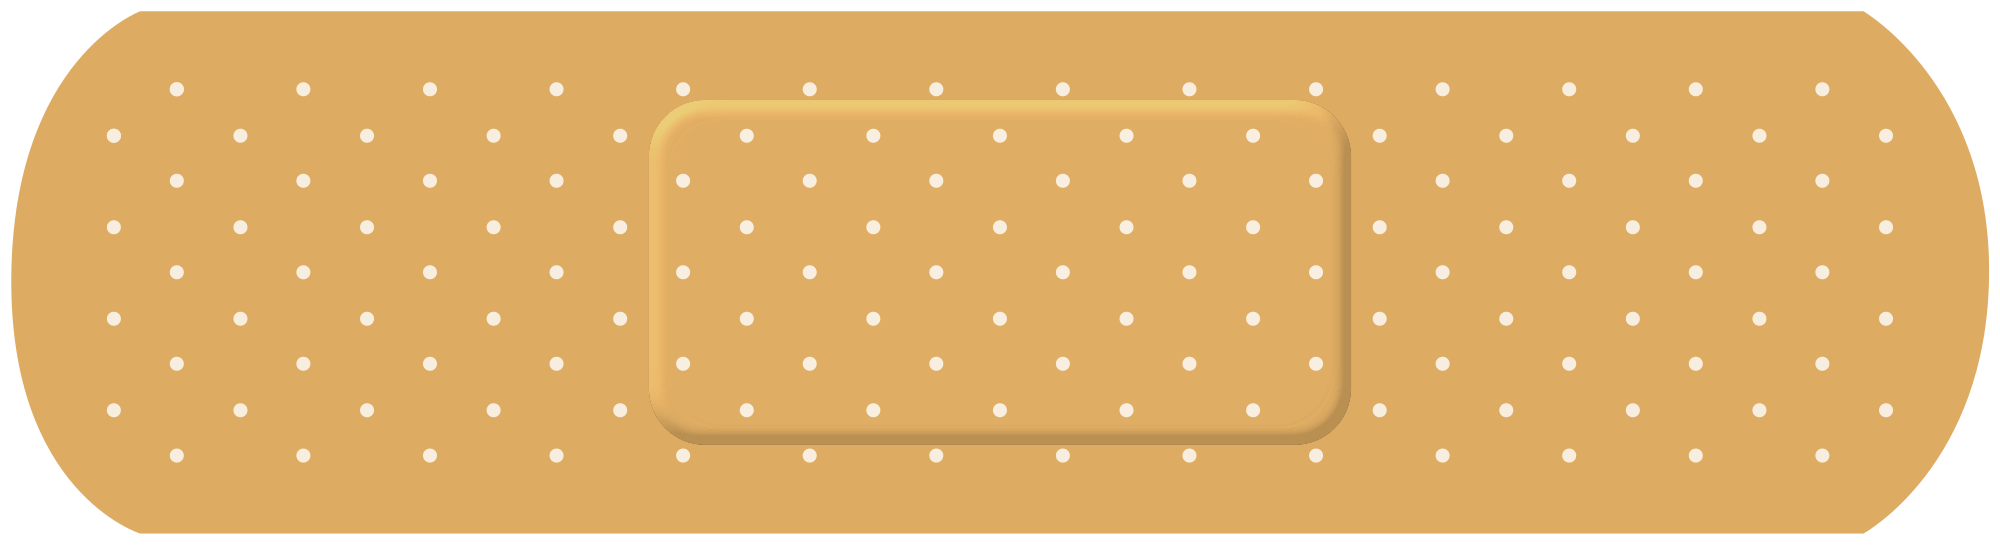 Bandaid clipart free images image